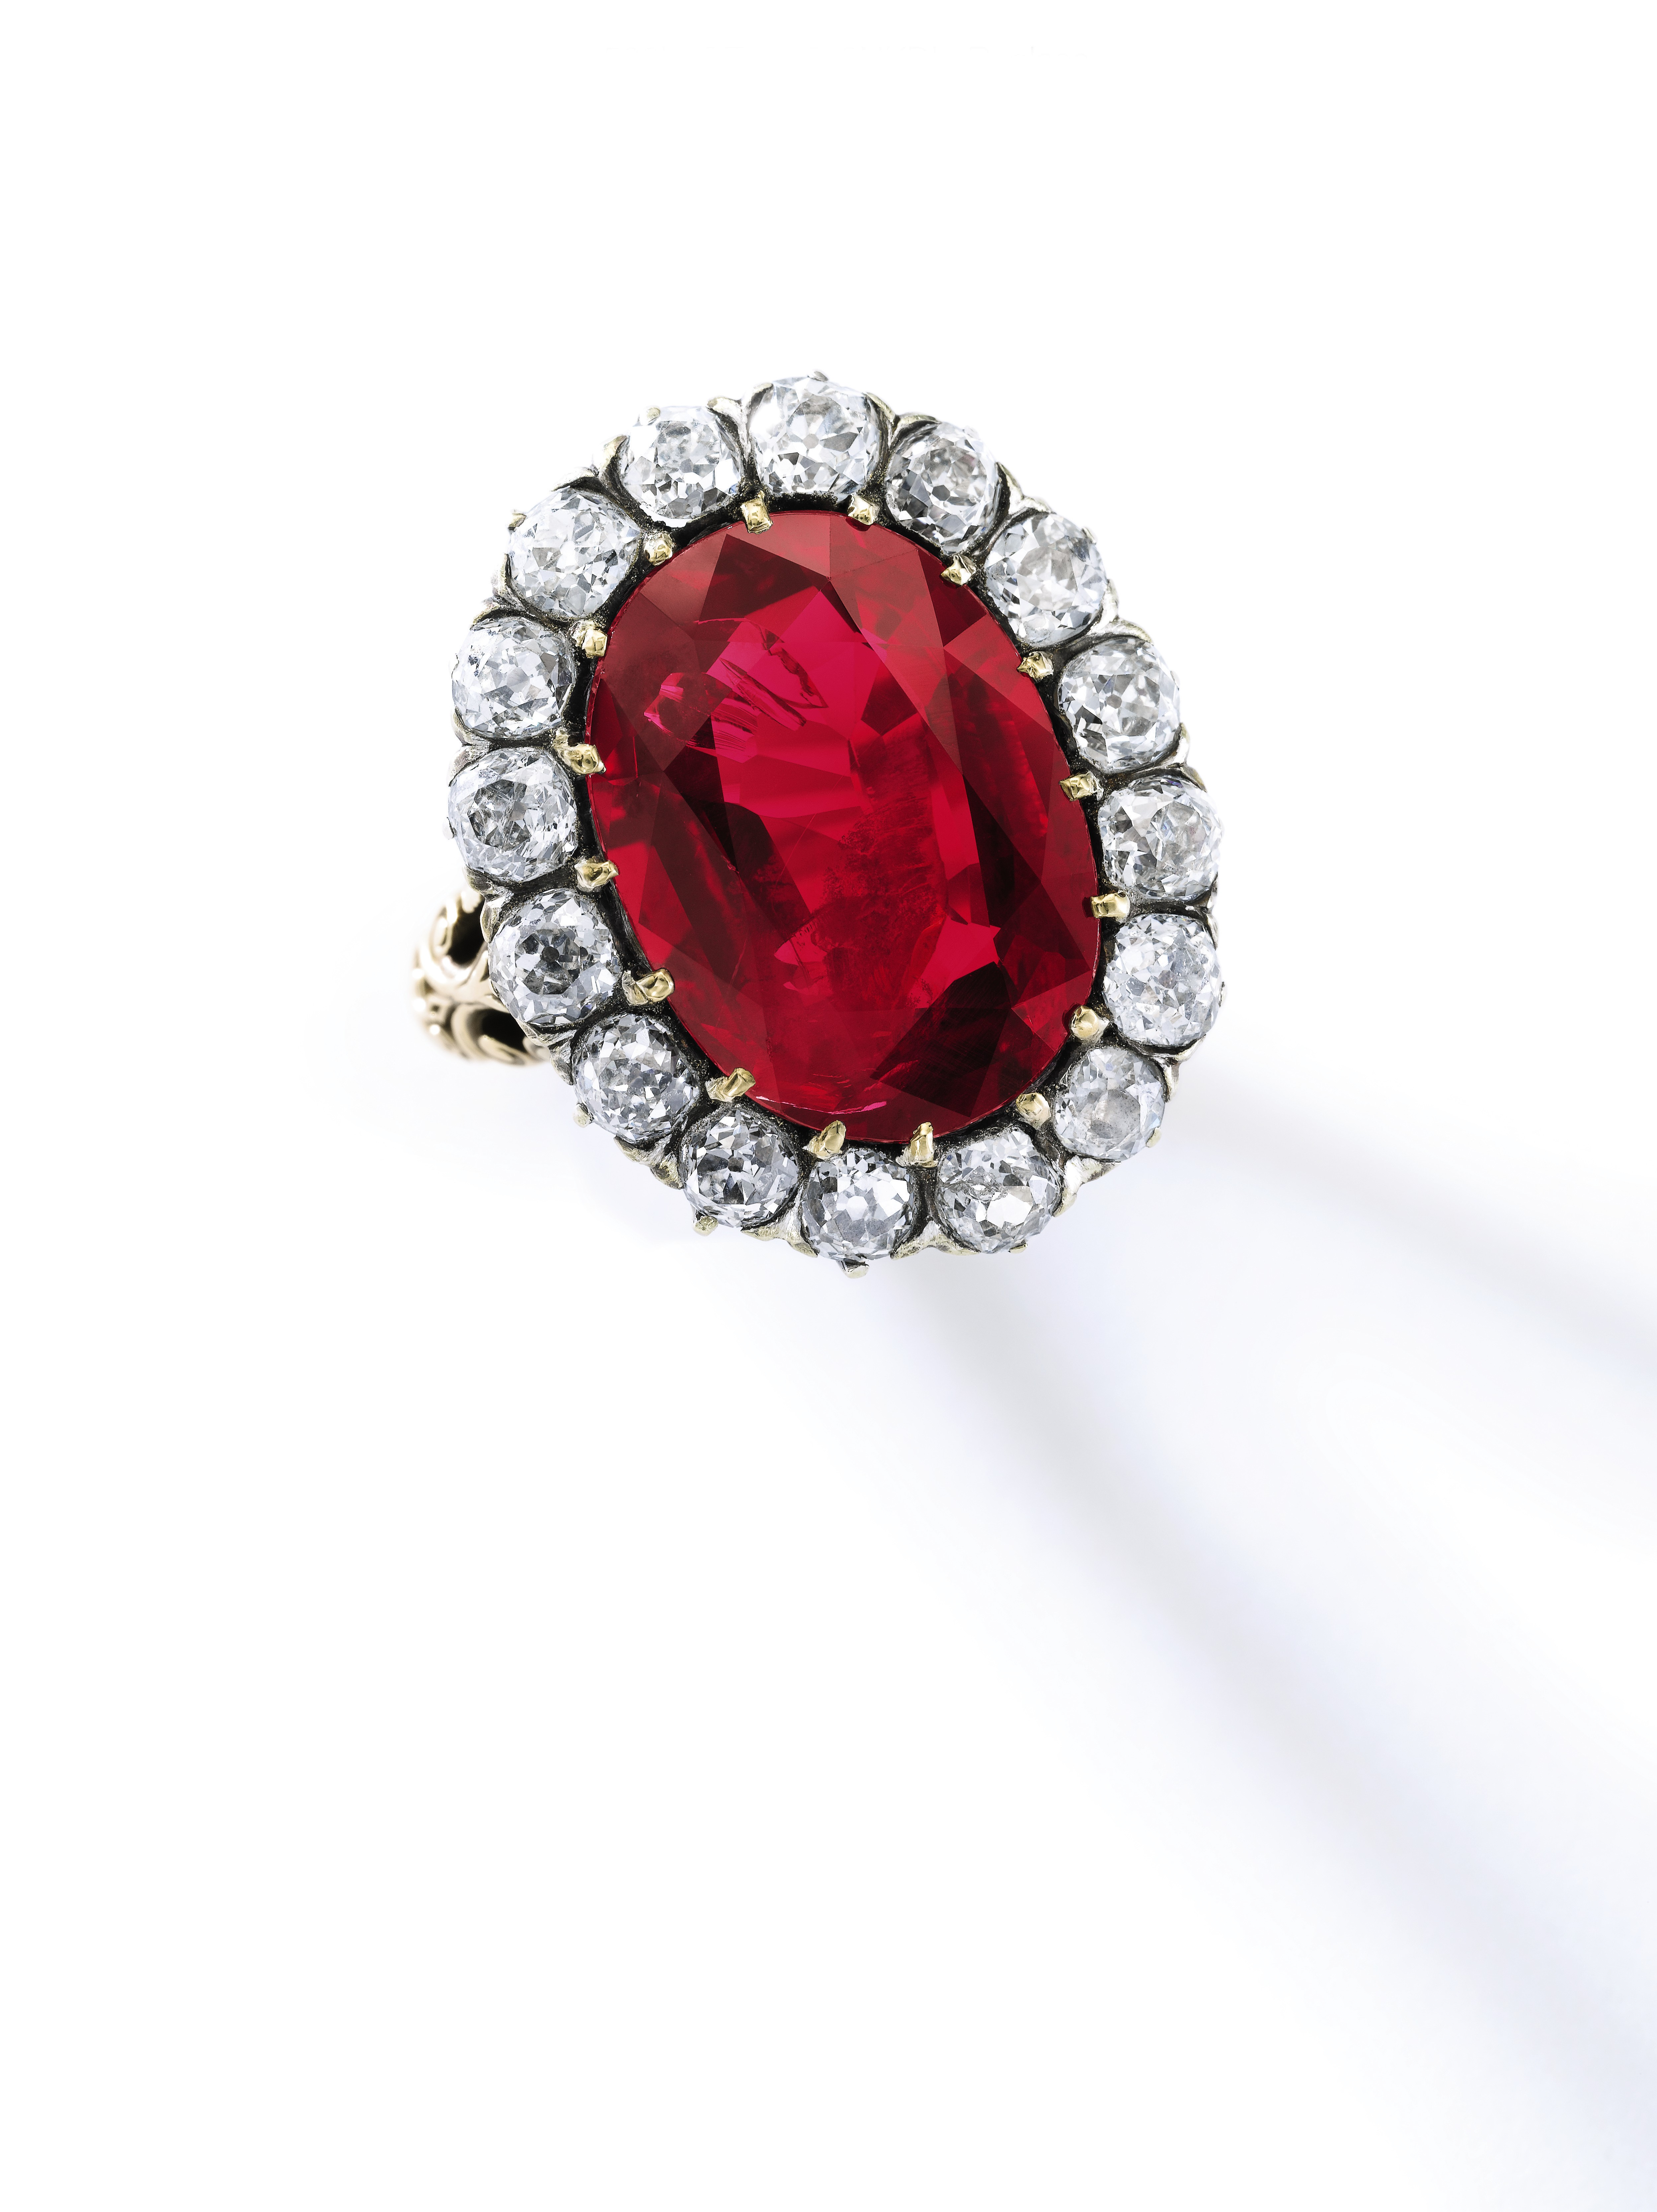 """The Queen Maria-José Ruby Ring. This exceptional ruby and diamond ring was formerly part of the personal collection of the last Queen of Italy, Maria-José (1906-2001). The superb jewel has impeccable provenance: it was a gift from Italian bibliophile Tammaro de Marinis on the occasion of Maria-José's wedding to Crown Prince Umberto in 1930. The captivating ring is set with an exquisite Burmese ruby weighing 8.48 carats, with no evidence of heat treatment, boasting the most sought-after hue for rubies: """"pigeon's blood"""". Estimate: $6,000,000-9,000,000."""